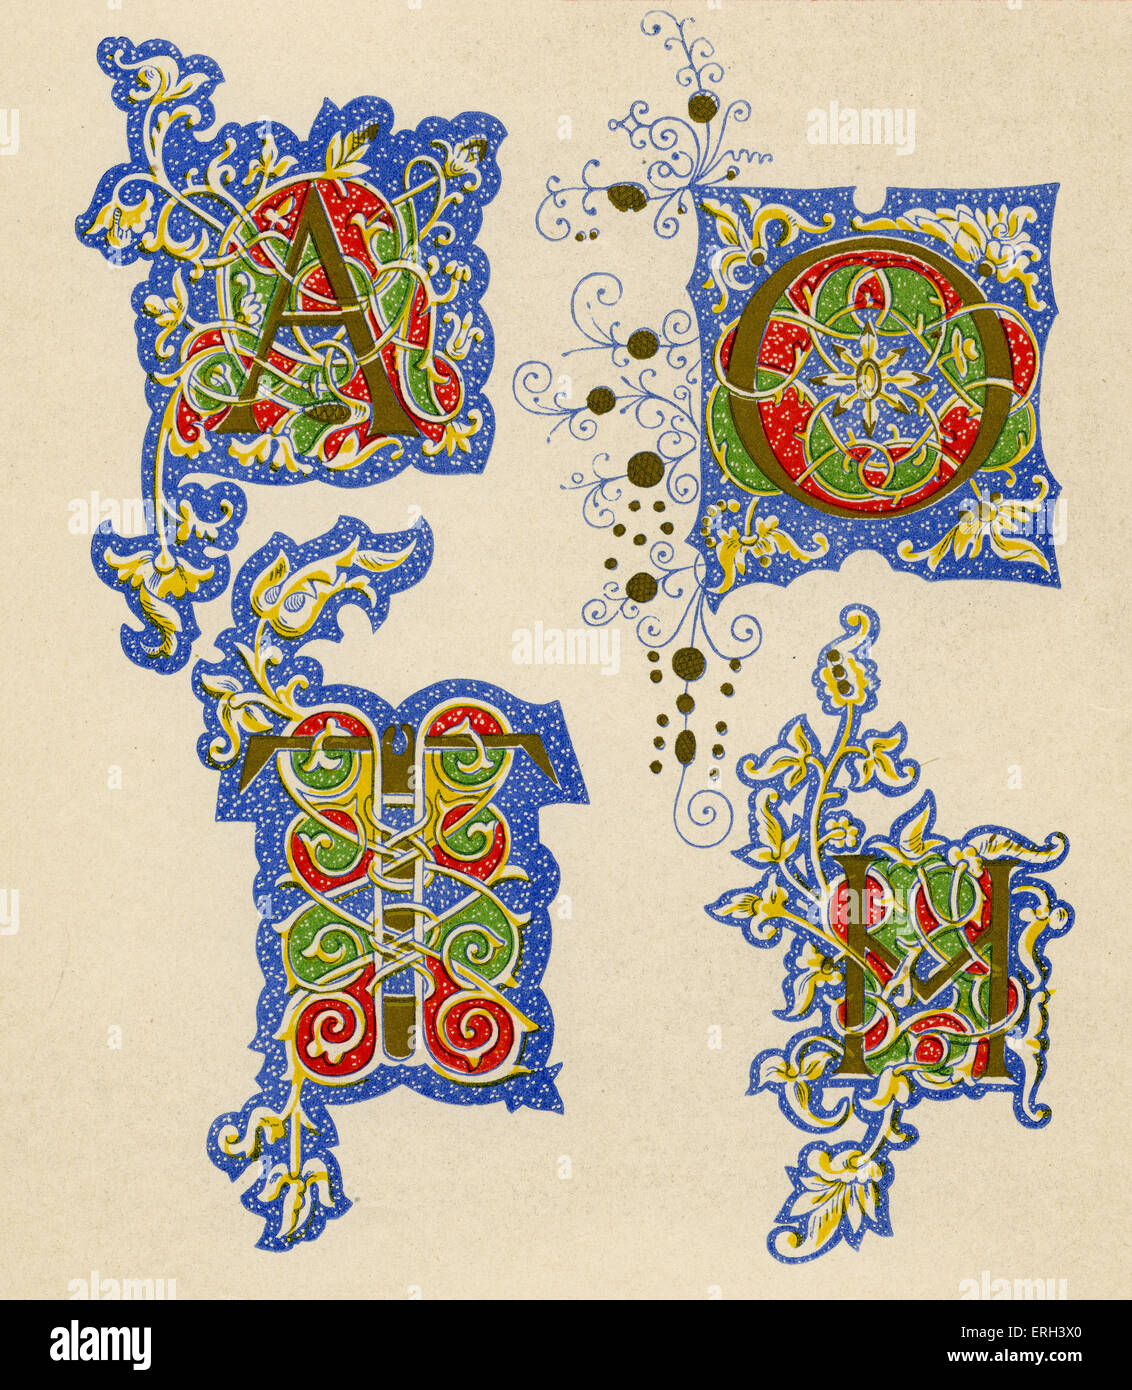 Illuminated letters A, O, T and M.  Fifteenth century. (1886 source). - Stock Image